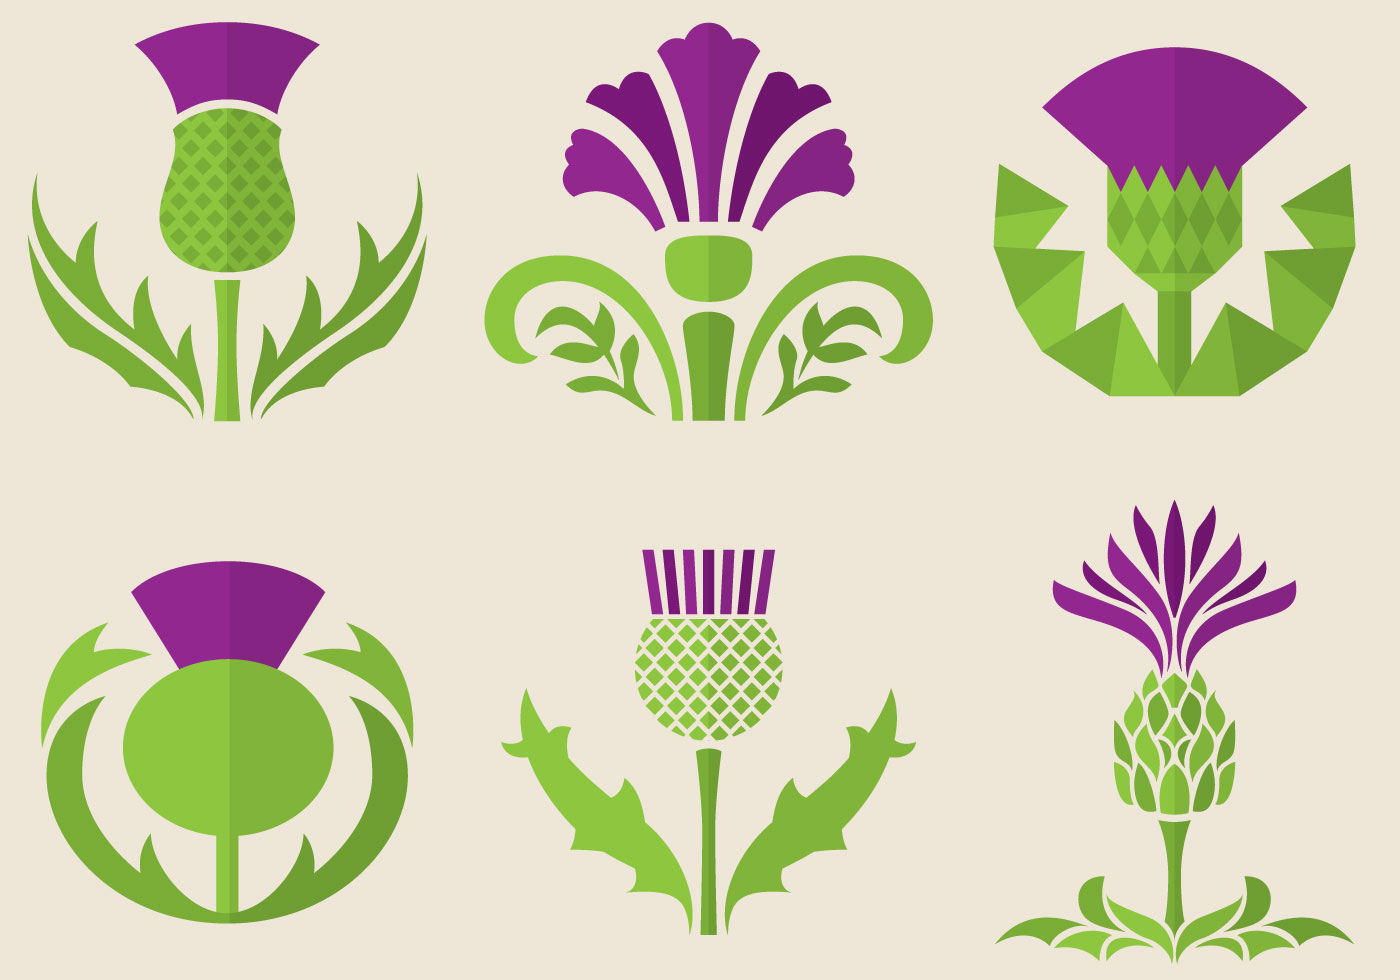 Thistle Flowers - Download Free Vectors, Clipart Graphics ...